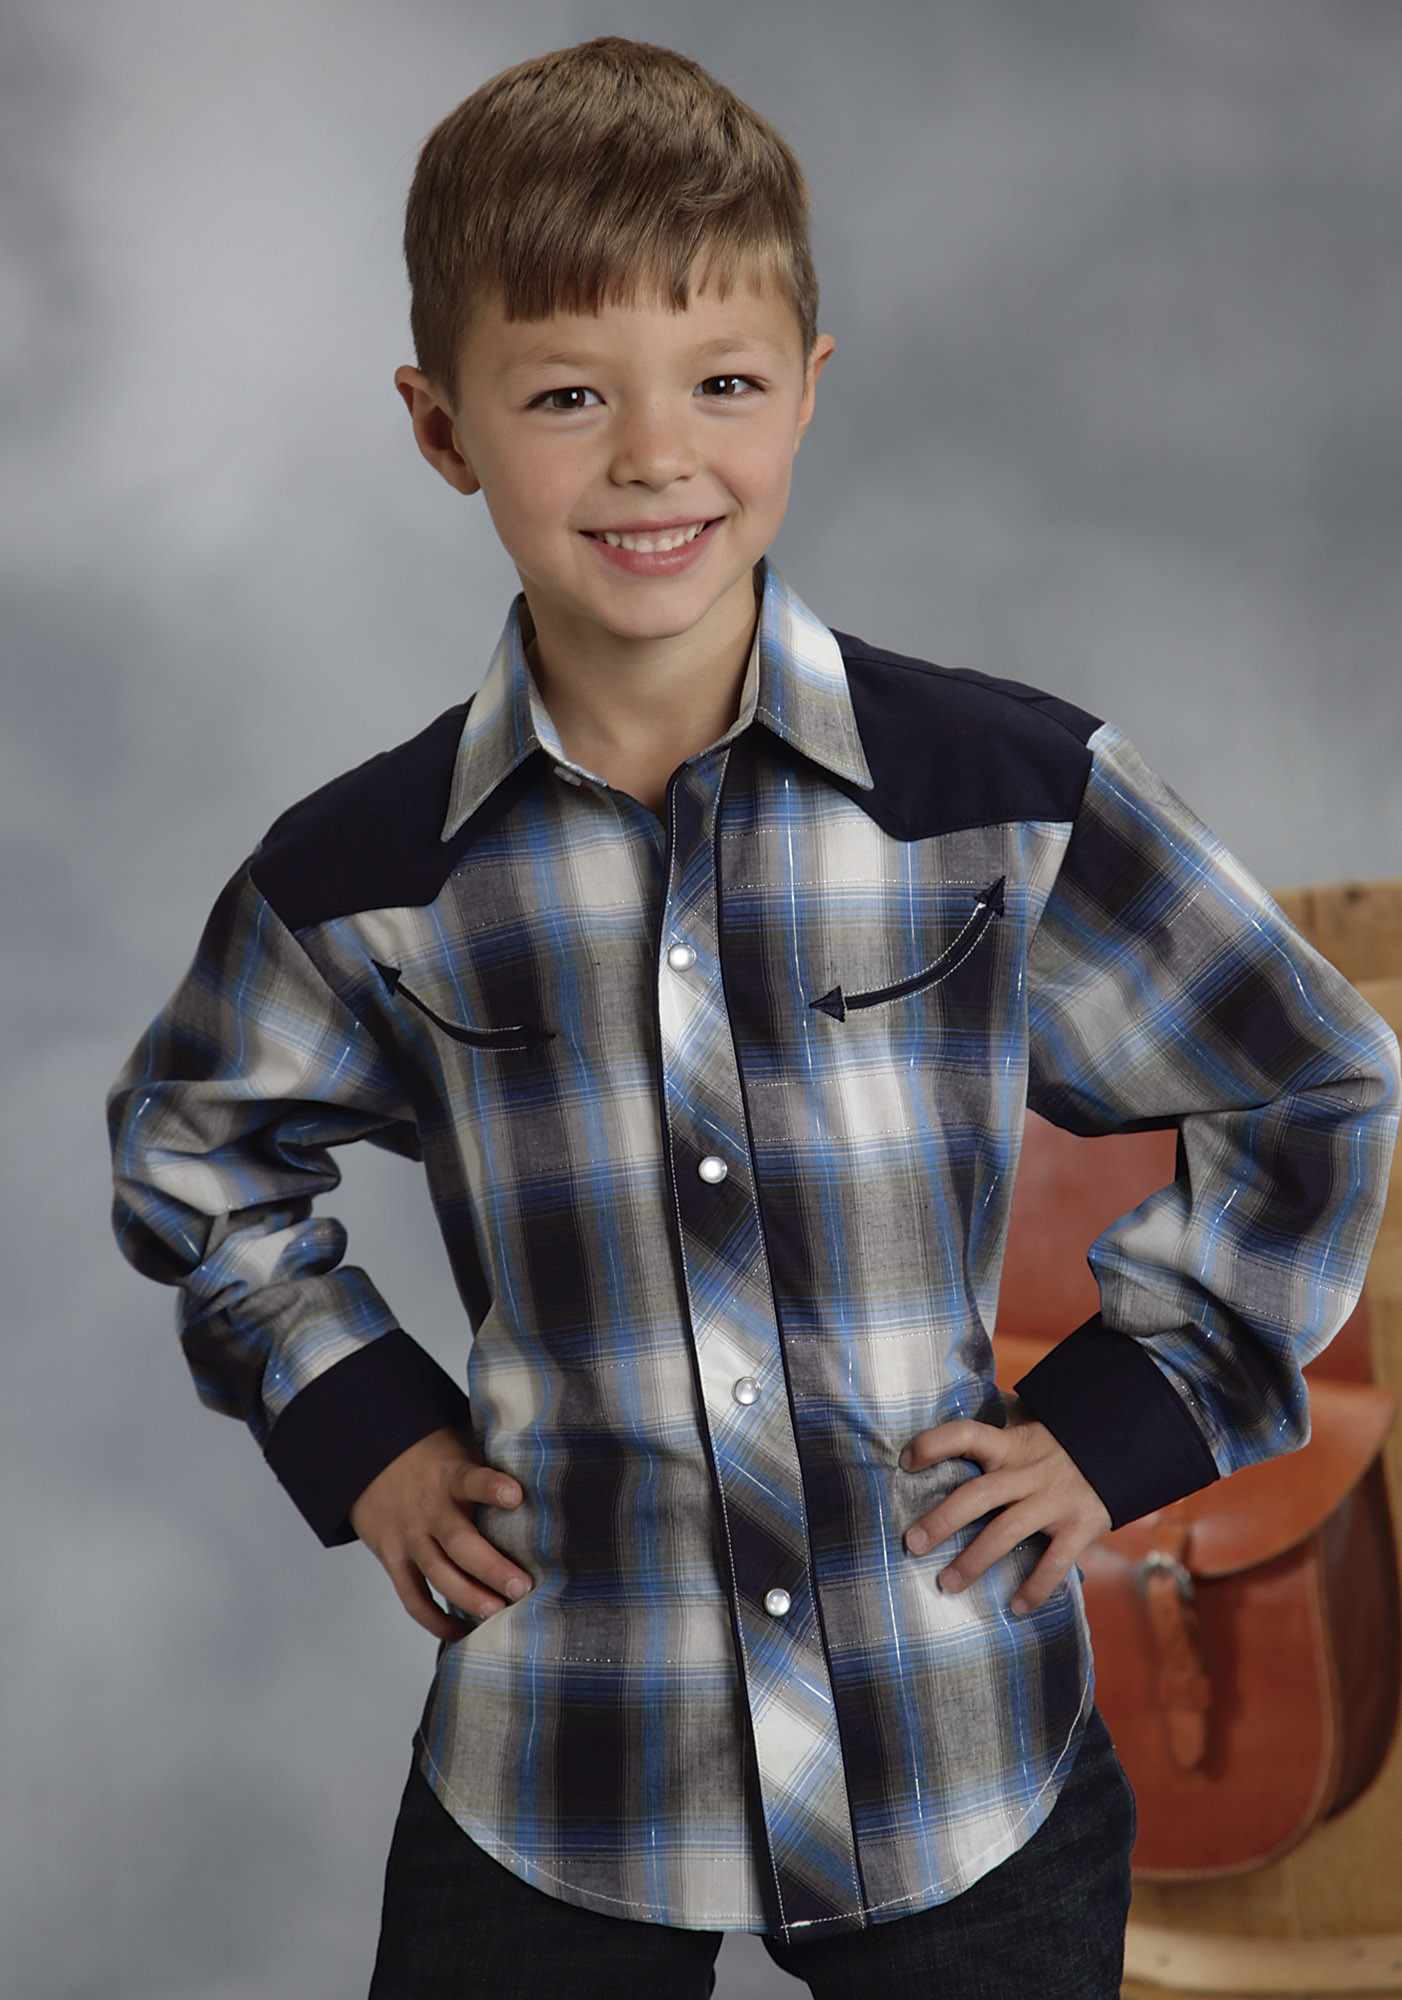 Boys' Clothing Shop for boys' western whomeverf.cf have jeans, shirts, hats and more in children's sizes for boys and infants by Cinch, Panhandle Slim, Cowboy Hardware, and more.